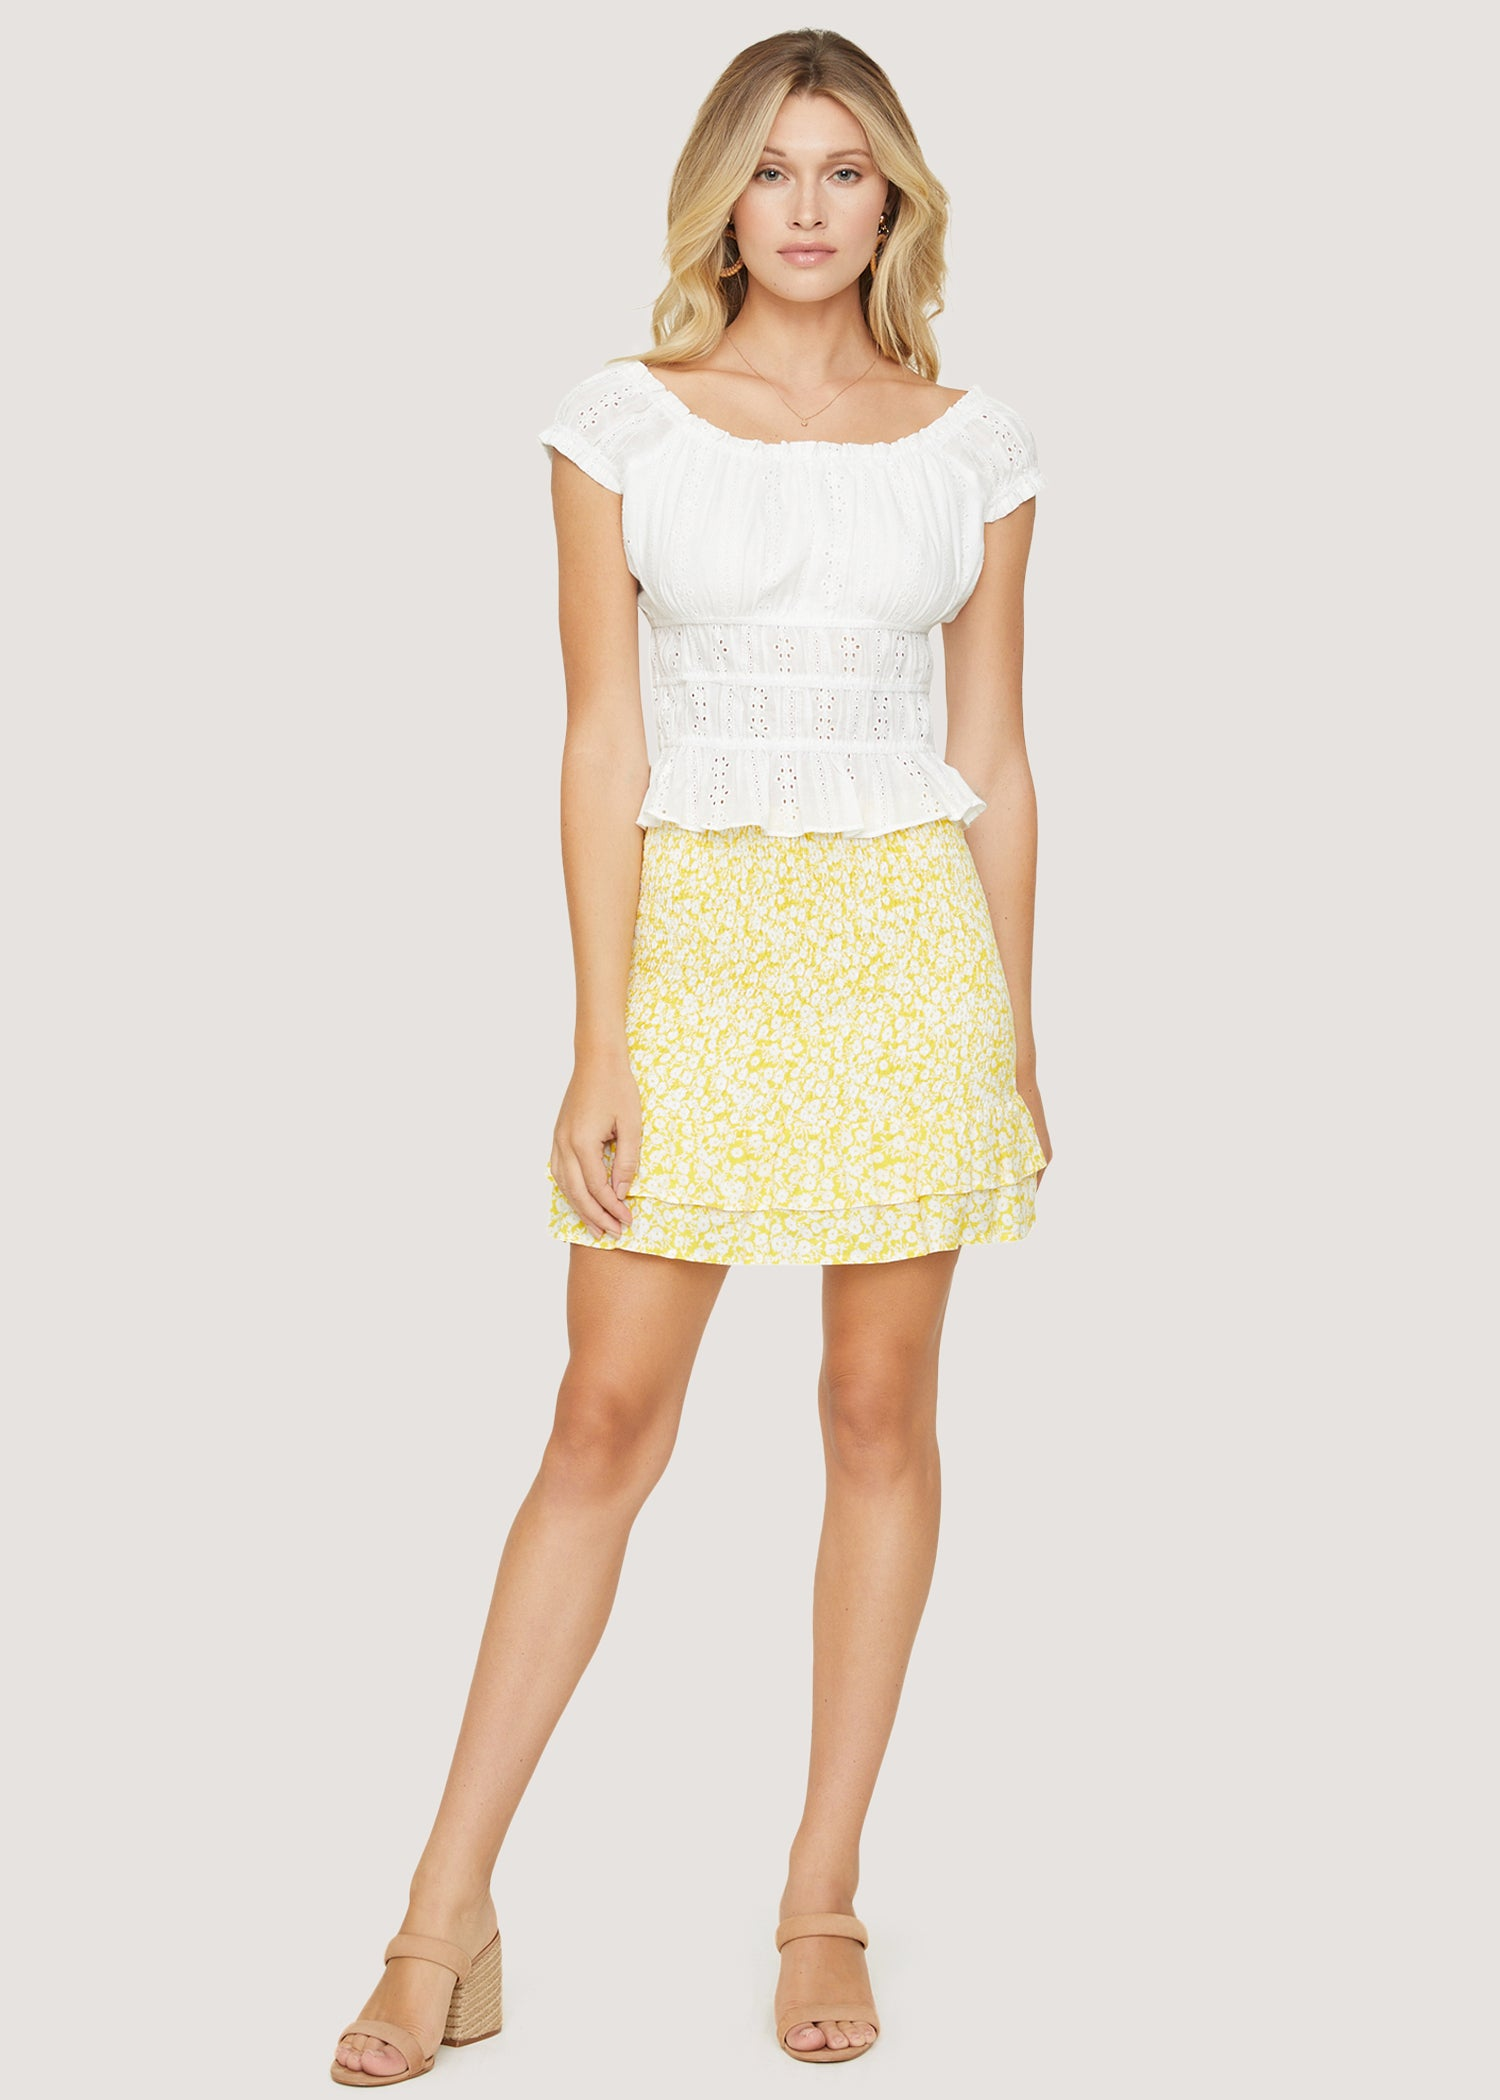 Sweet Summer Daze Mini Skirt